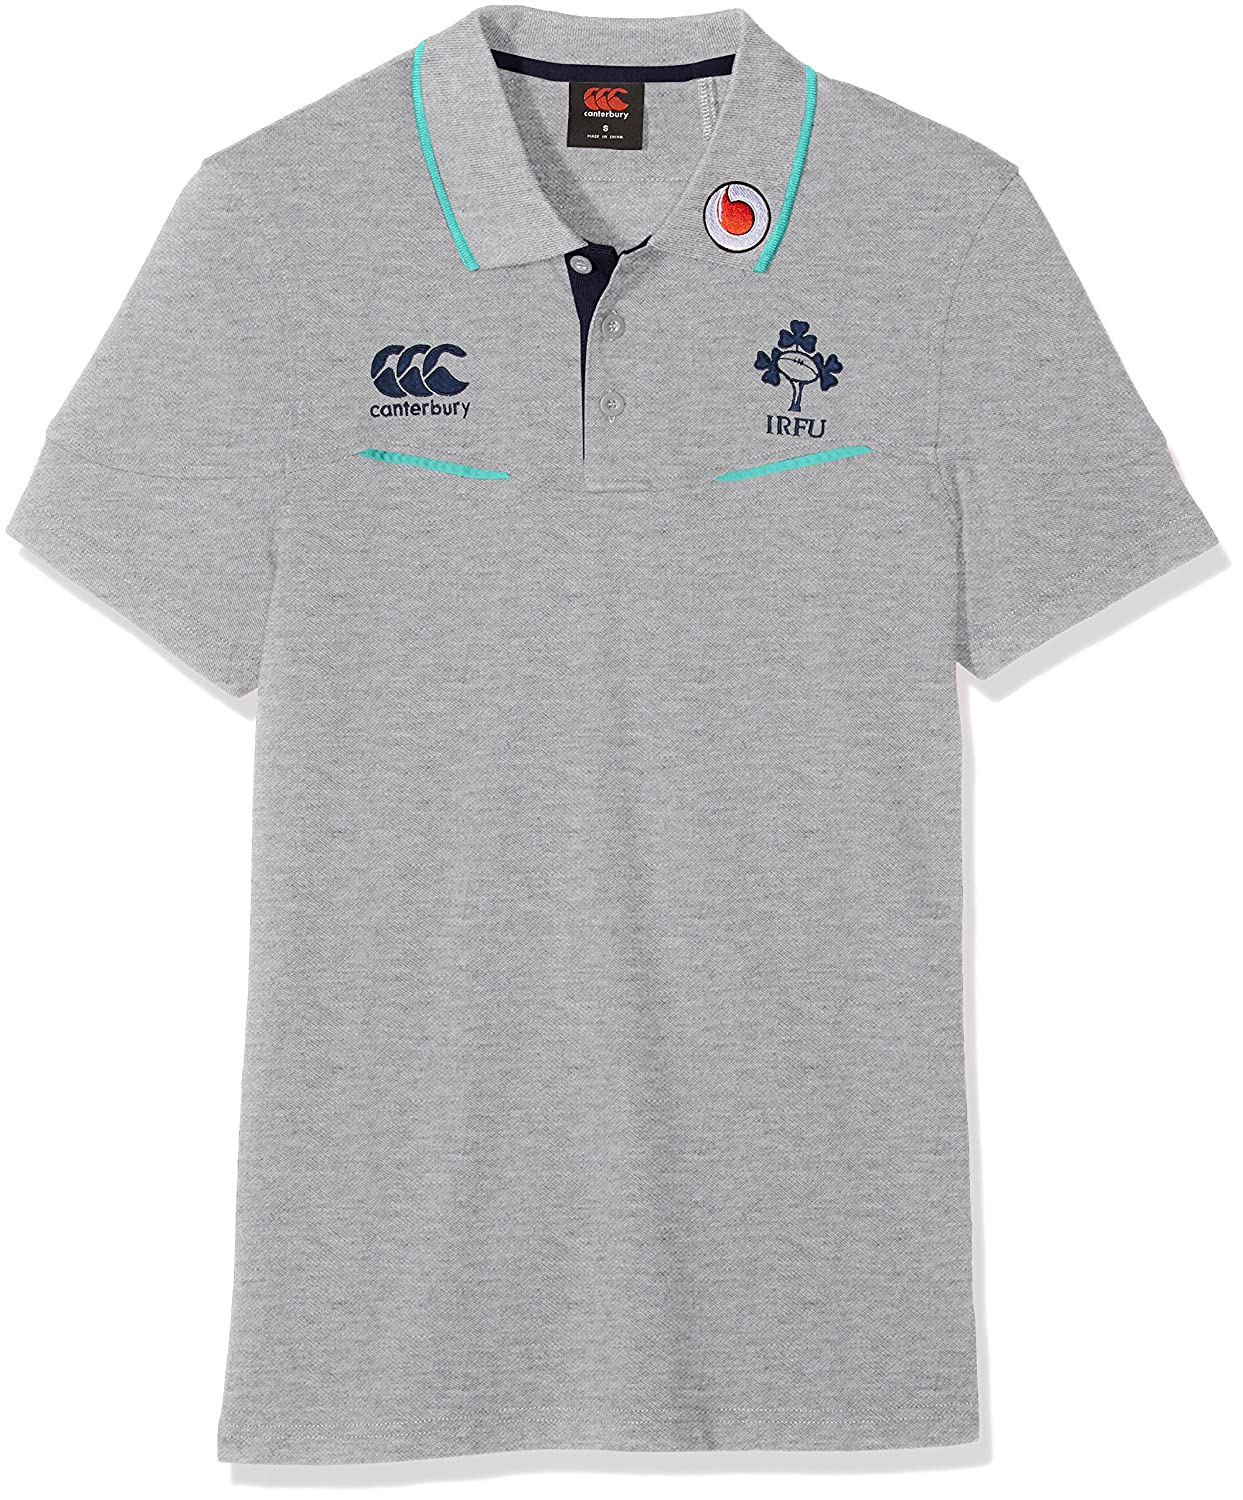 2016-2017 Ireland Rugby Cotton Training Polo Shirt (Classic Marl) B01HEO7A0C Small 36